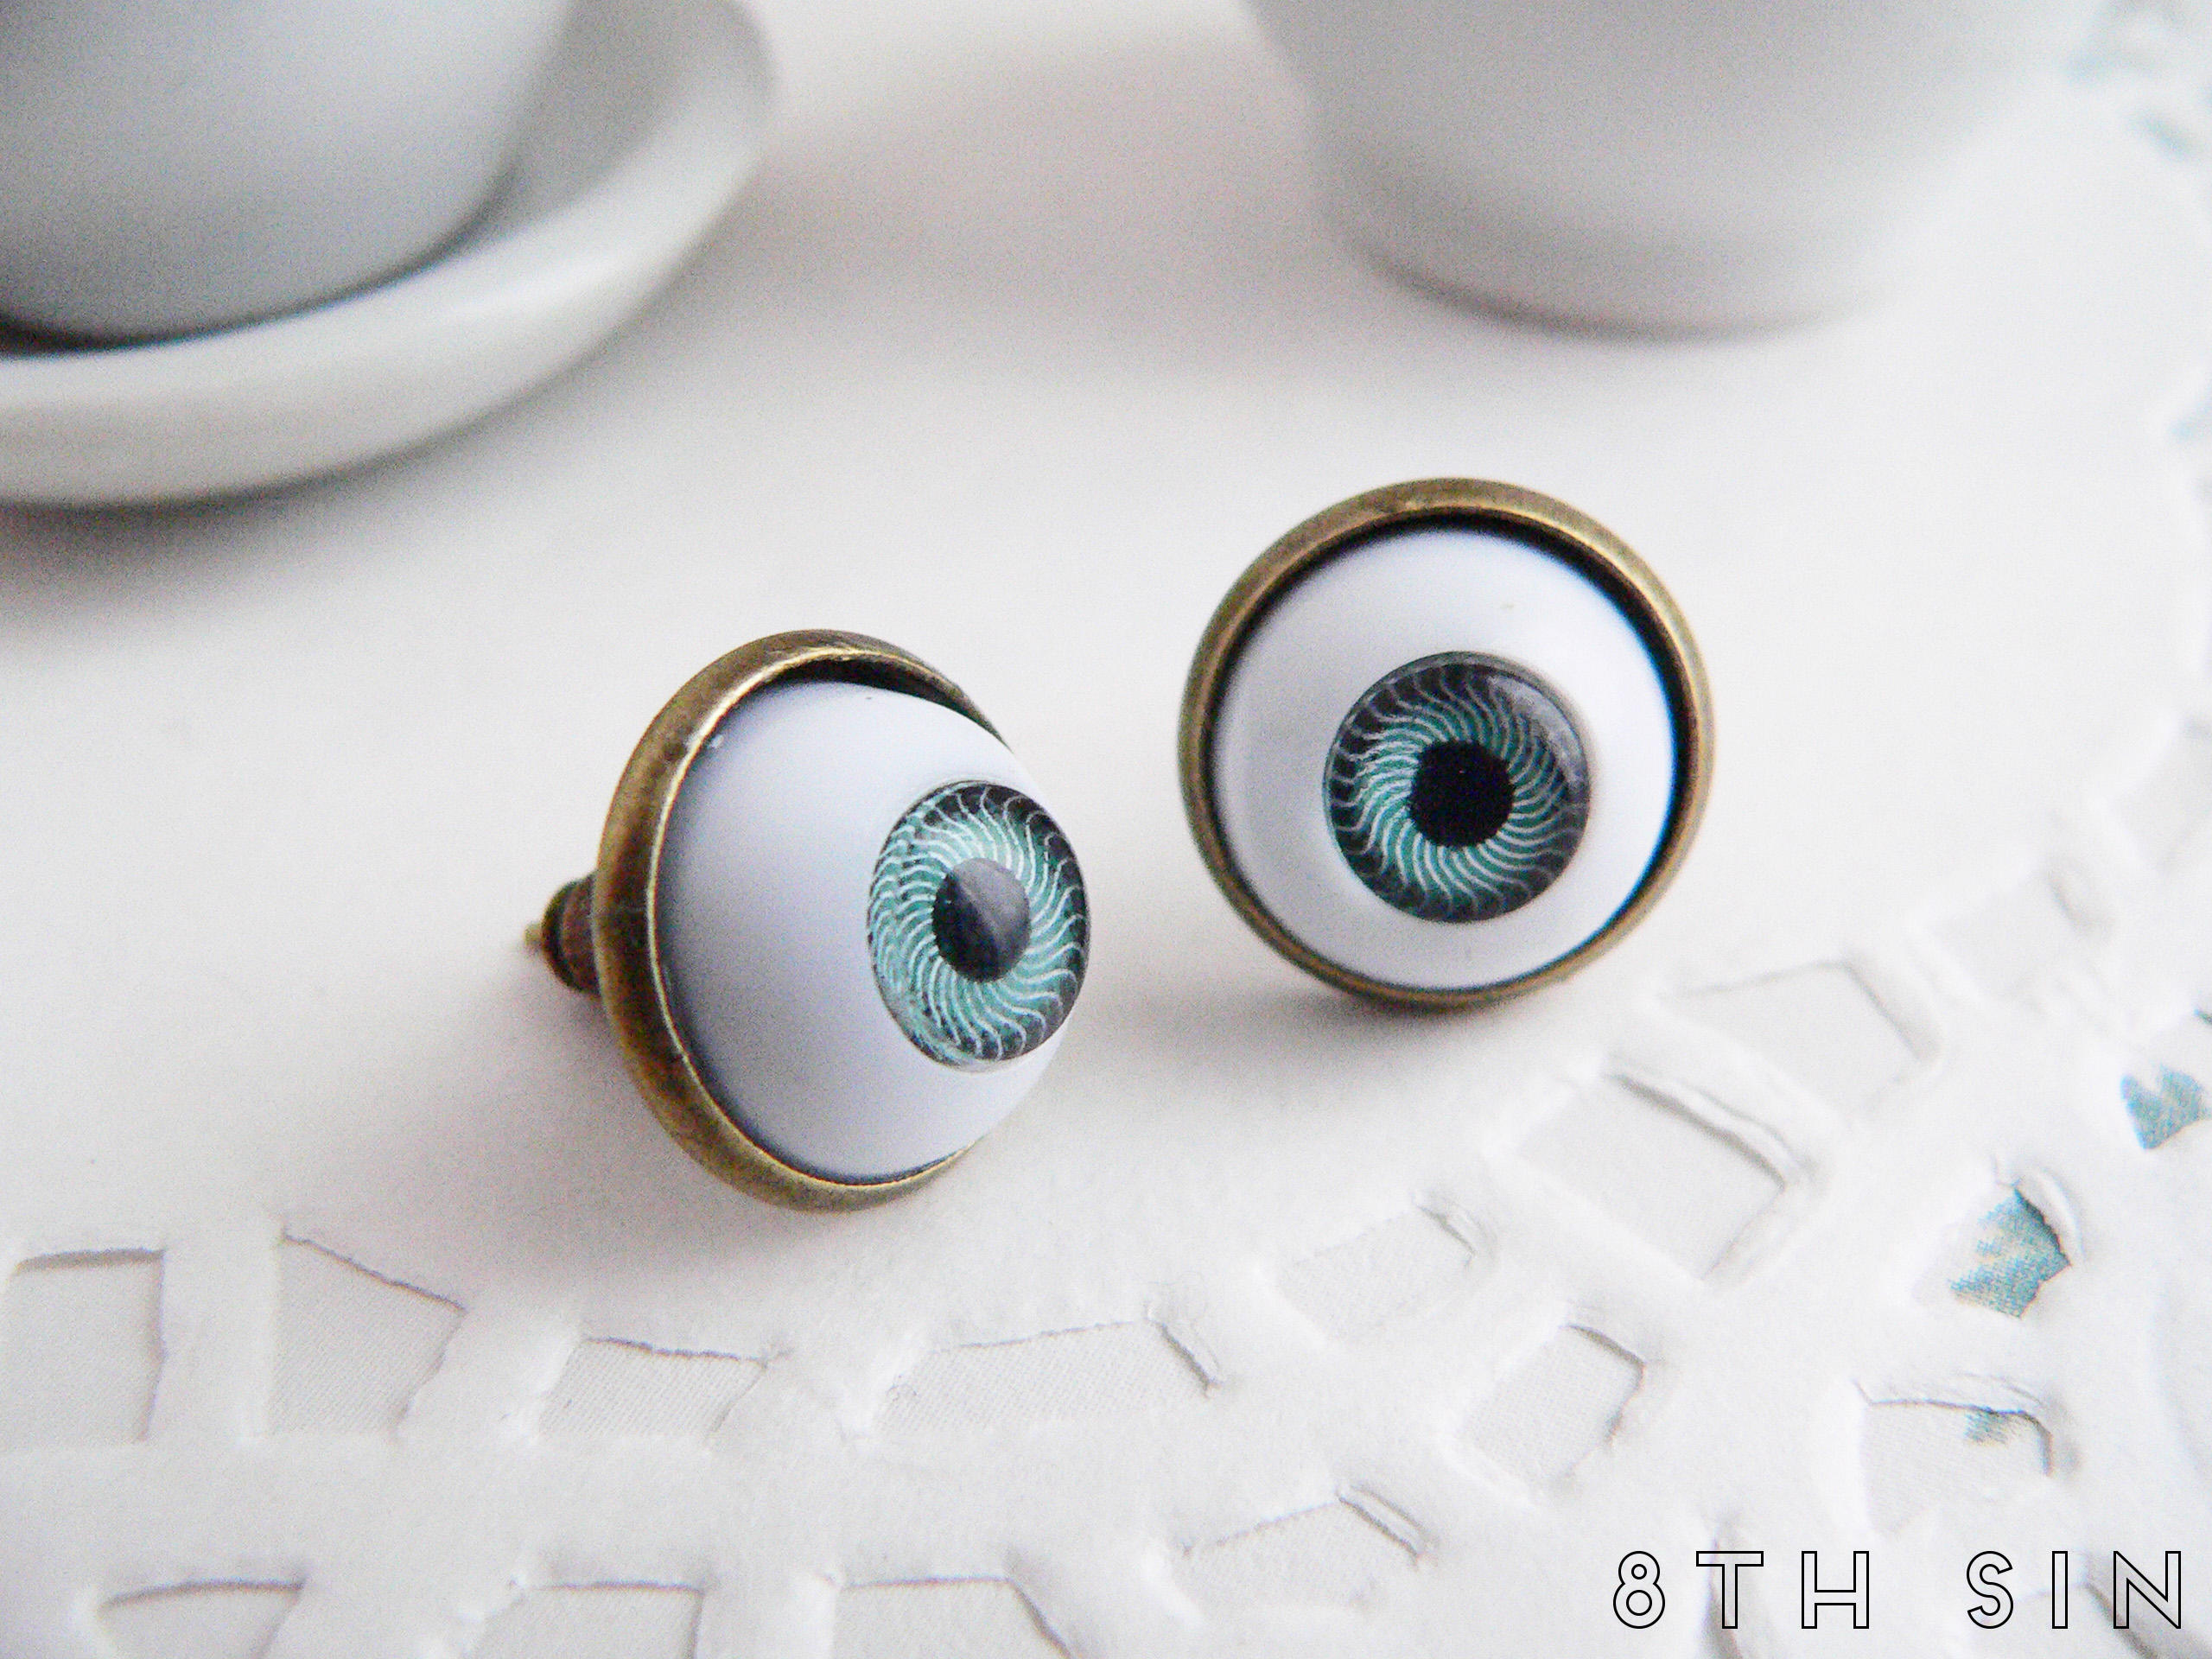 antique bronze and blue eyeball earrings